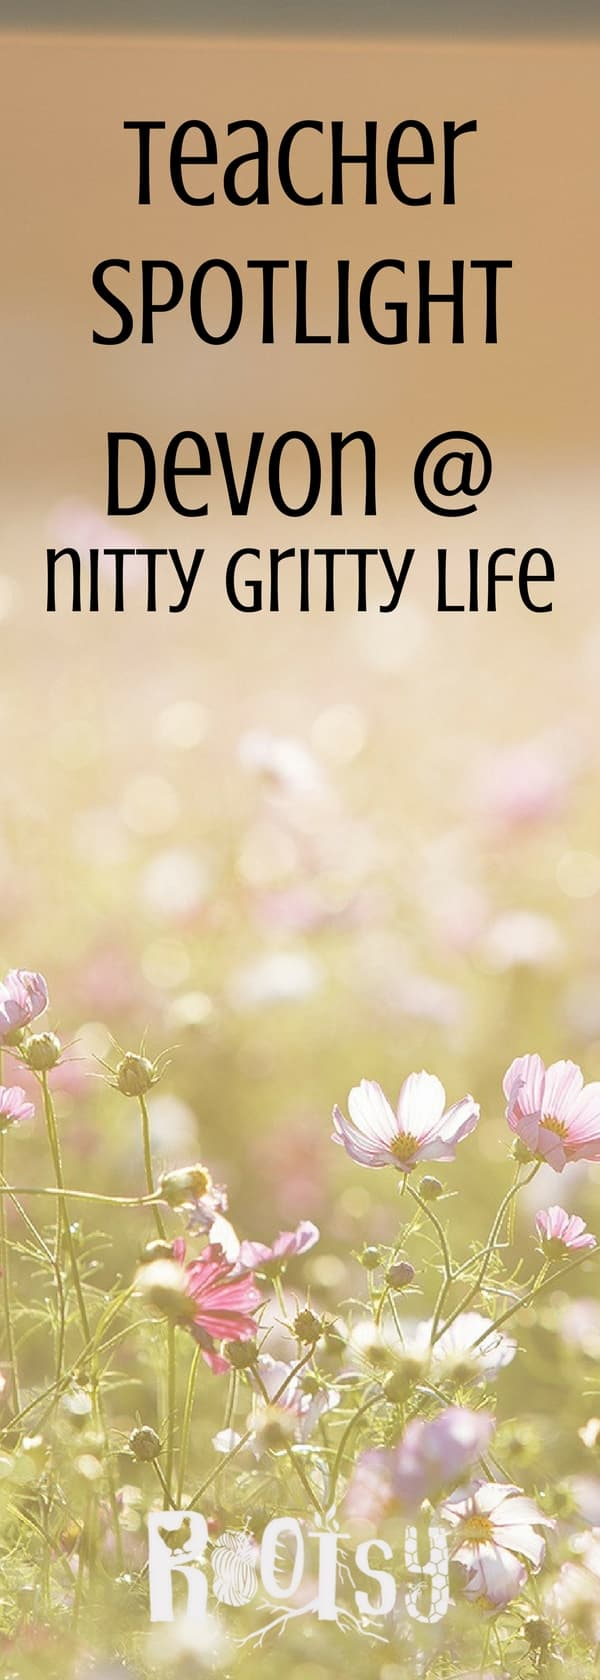 This month, we are honored to present Devon at Nitty Gritty Life as a guest teacher onRootsy. She has a background in foraging and is an avid homesteader and herbalist. Her lesson on incorporating foraged herbs into cookies looks mouthwatering! Rootsy.org